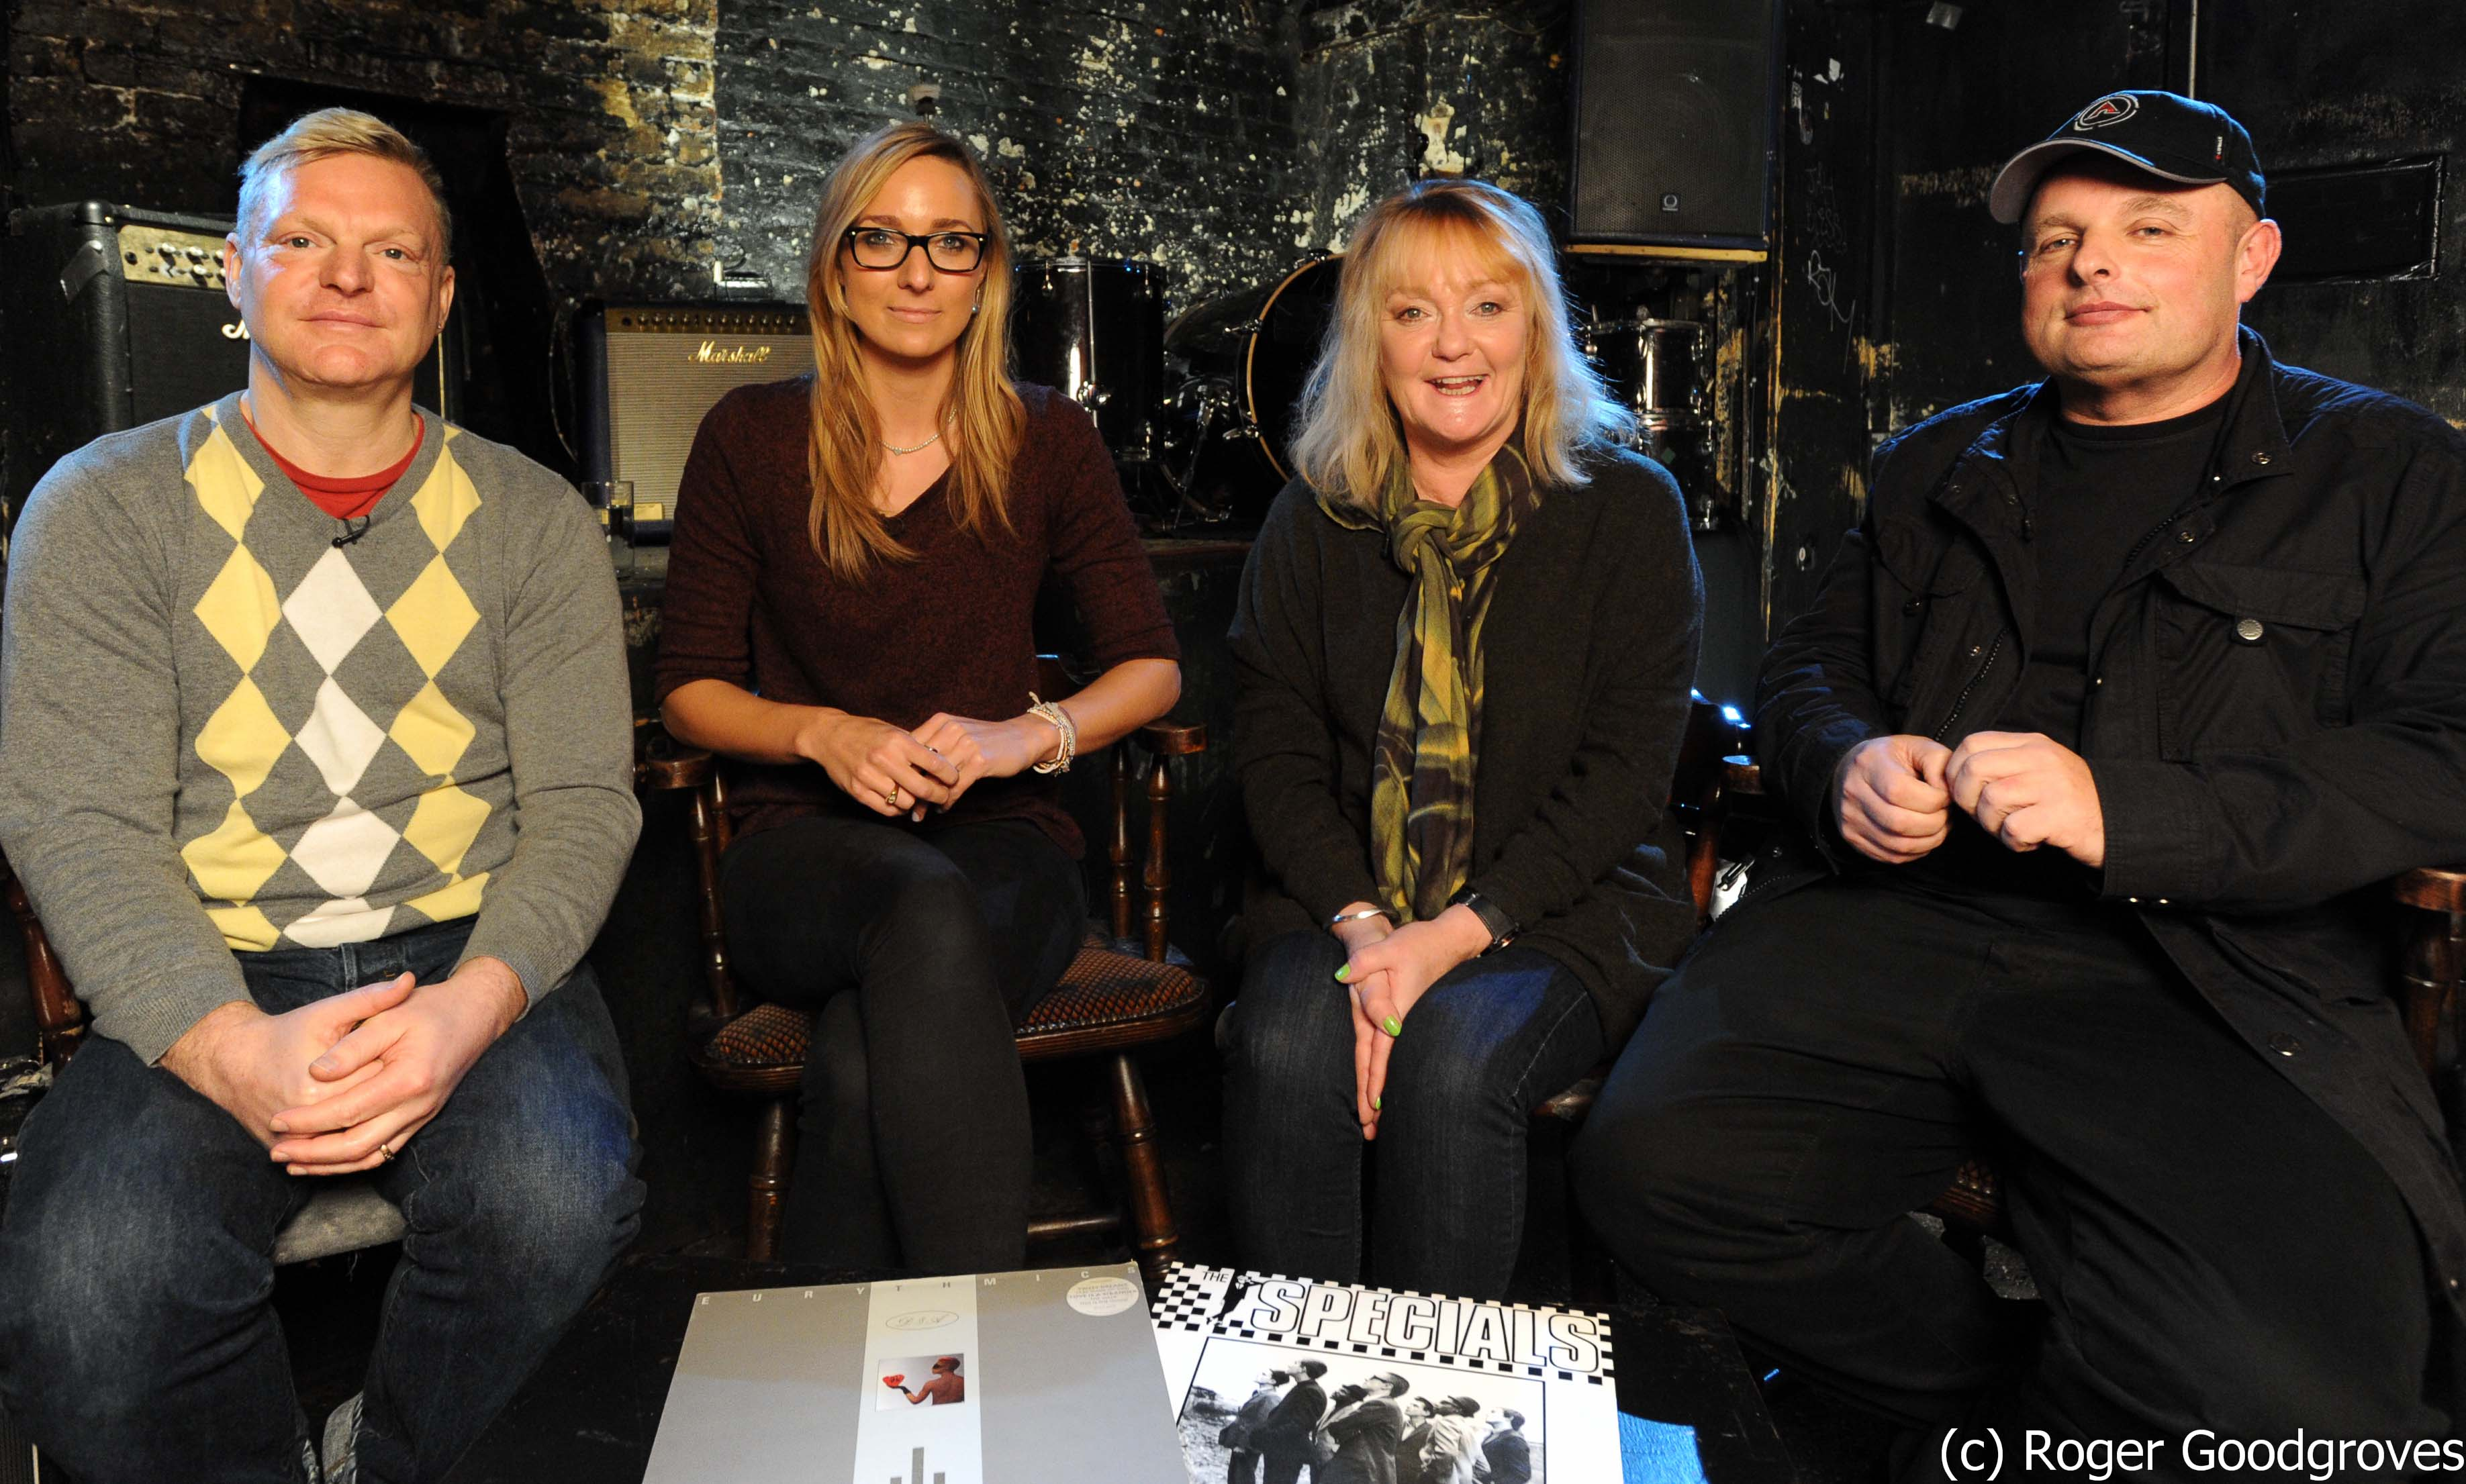 Andy Bell, Emma Stevens and DJ Dave Pearce on the Janice Long Review Show for Vintage TV at the 12 Bar Club London